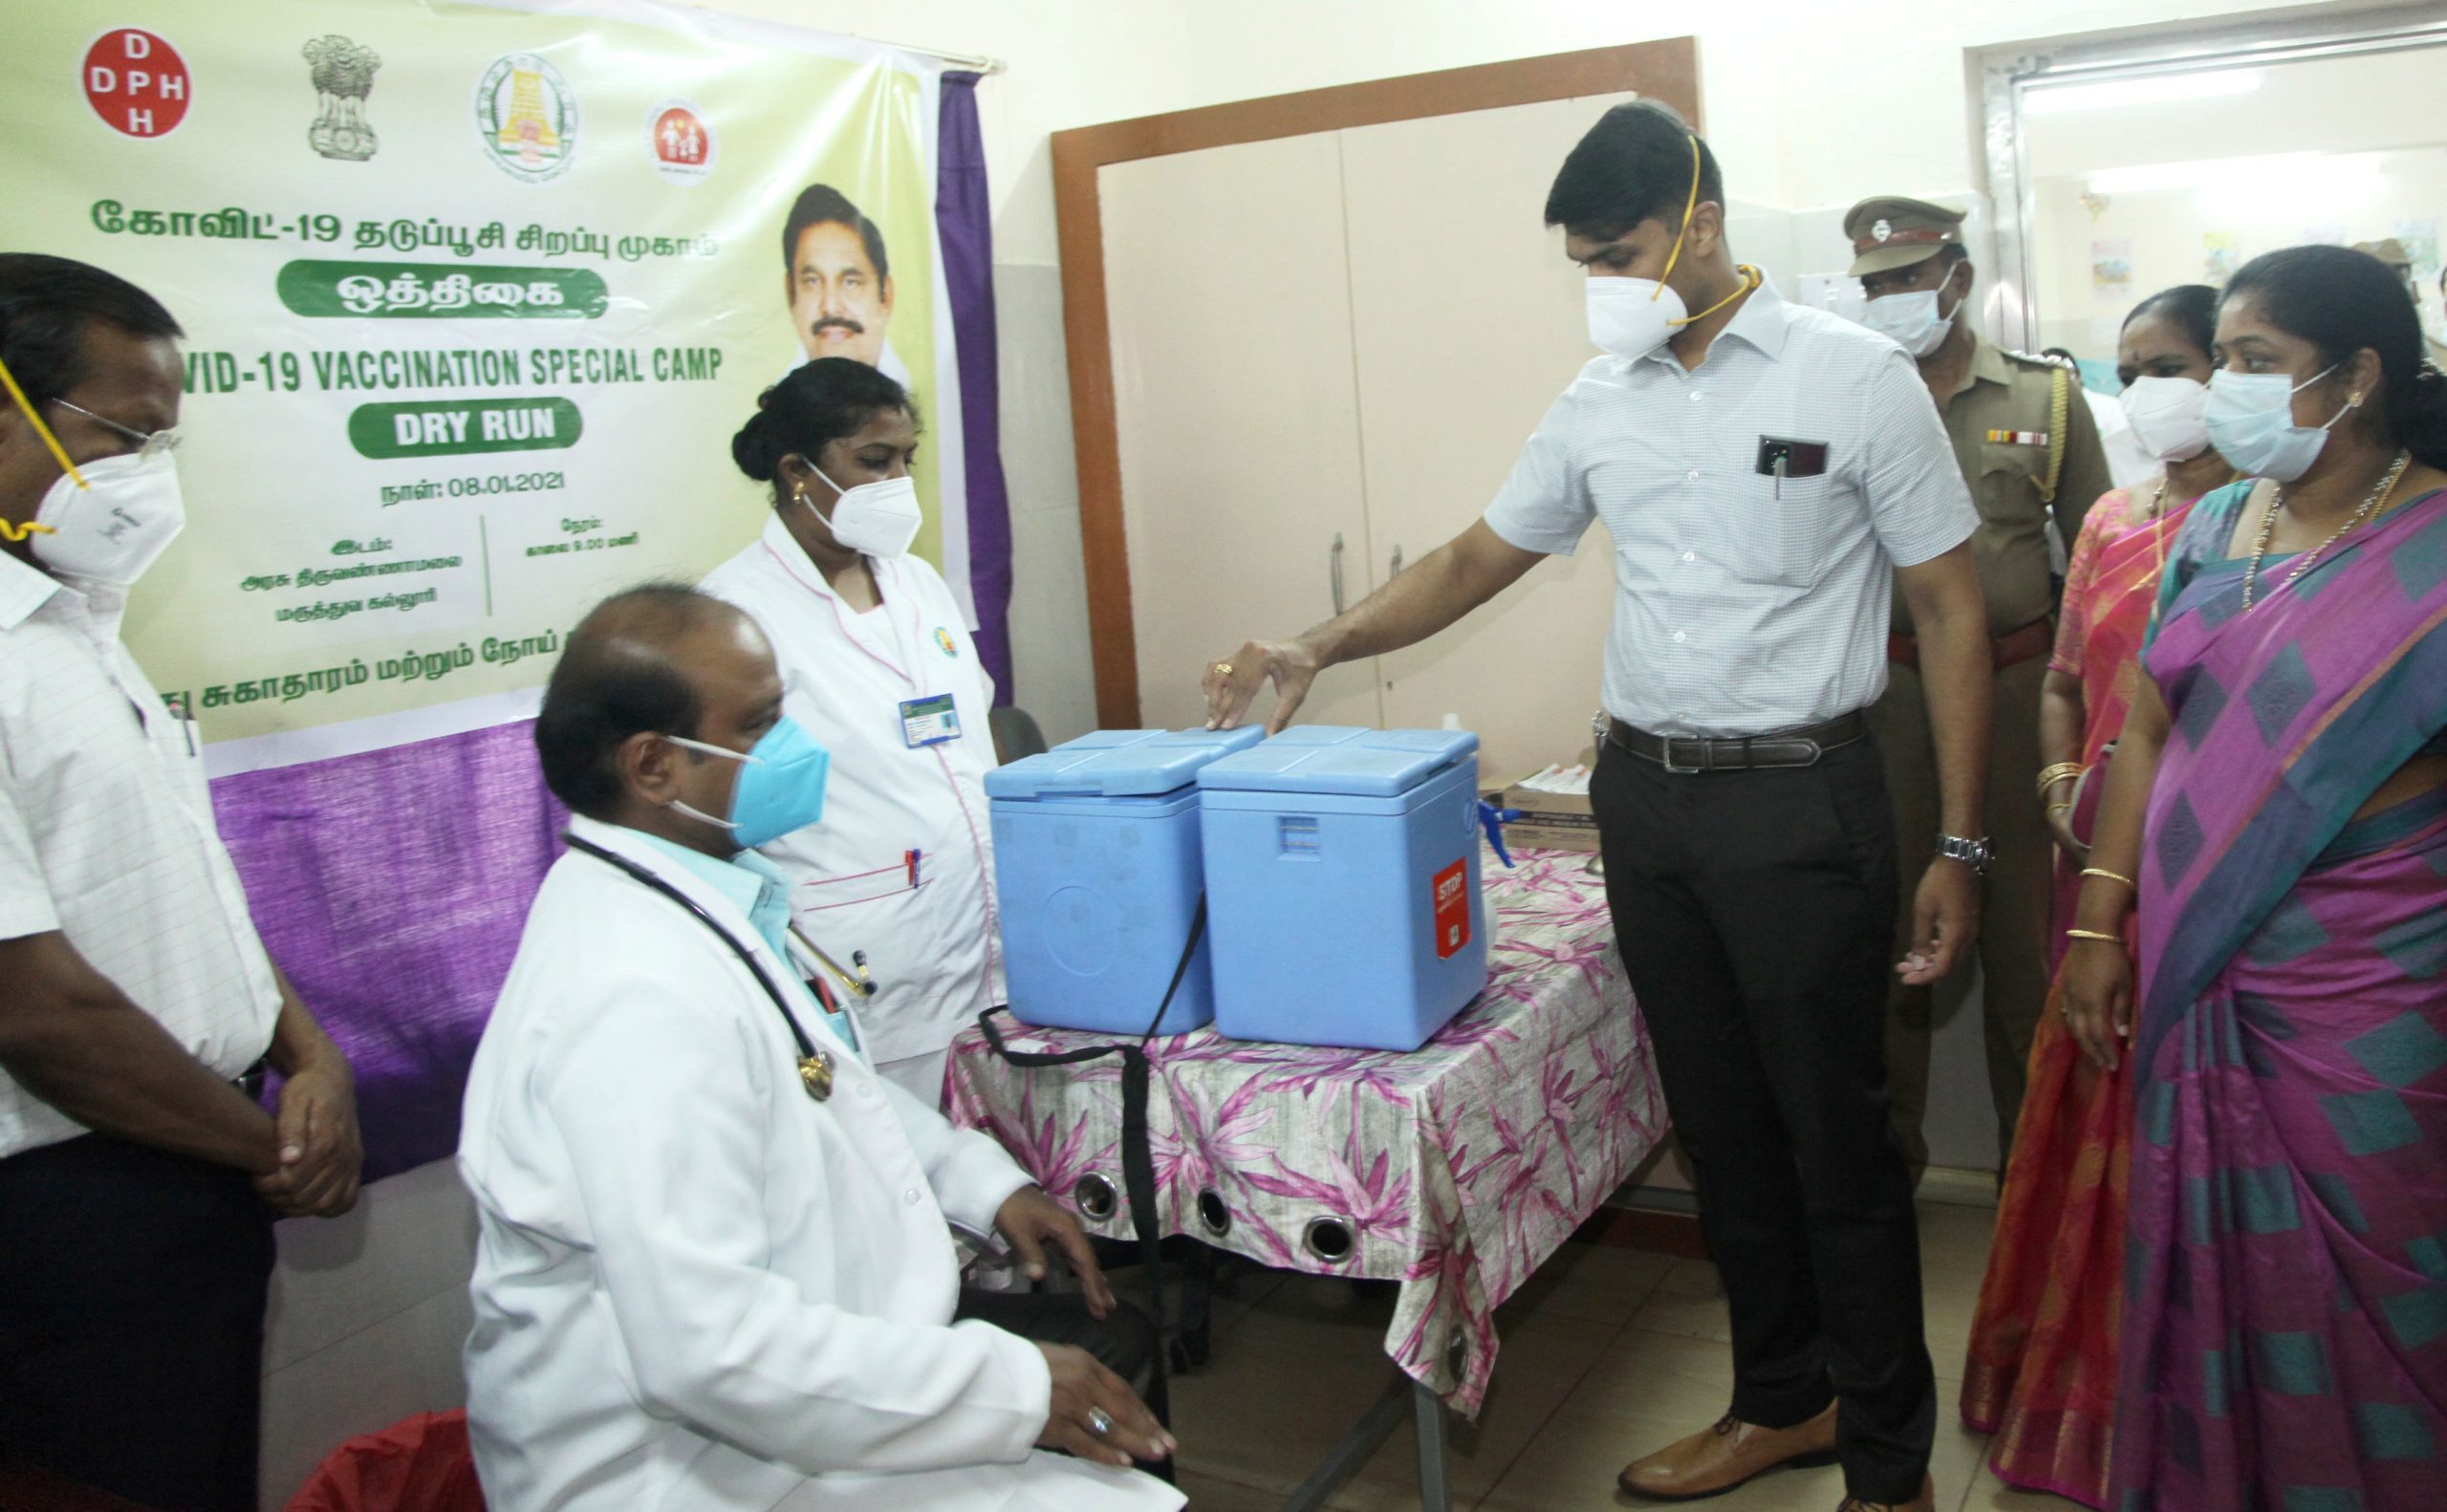 ollector Inspection of Covid-19 Vaccination Special Camp Dry Run at Tiruvannamalai Medical College.